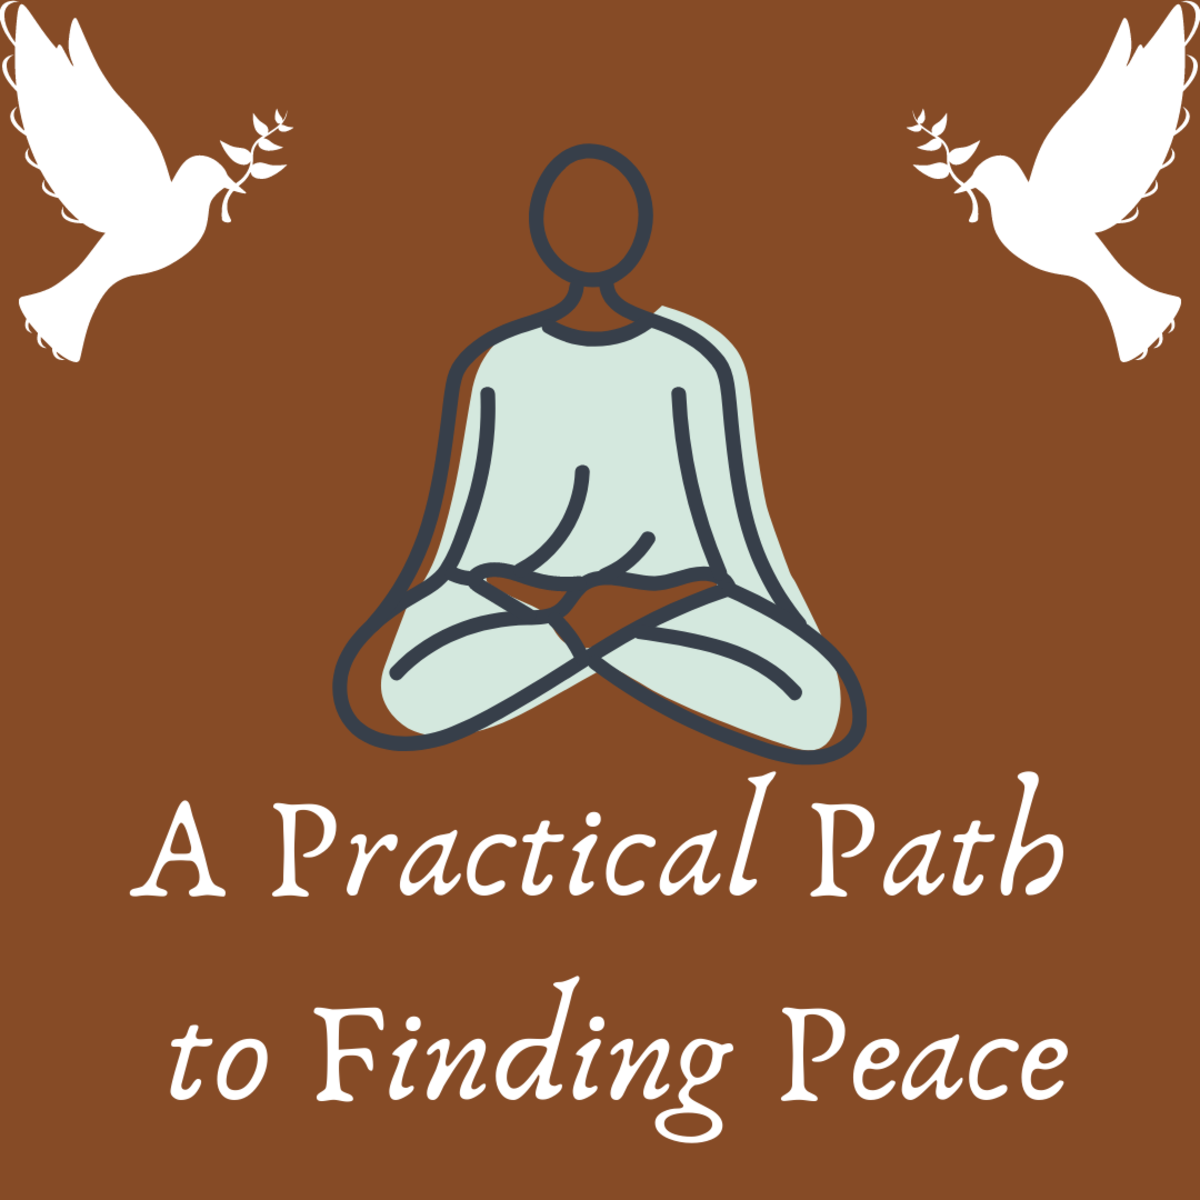 Read on to learn about a practical path to finding peace.